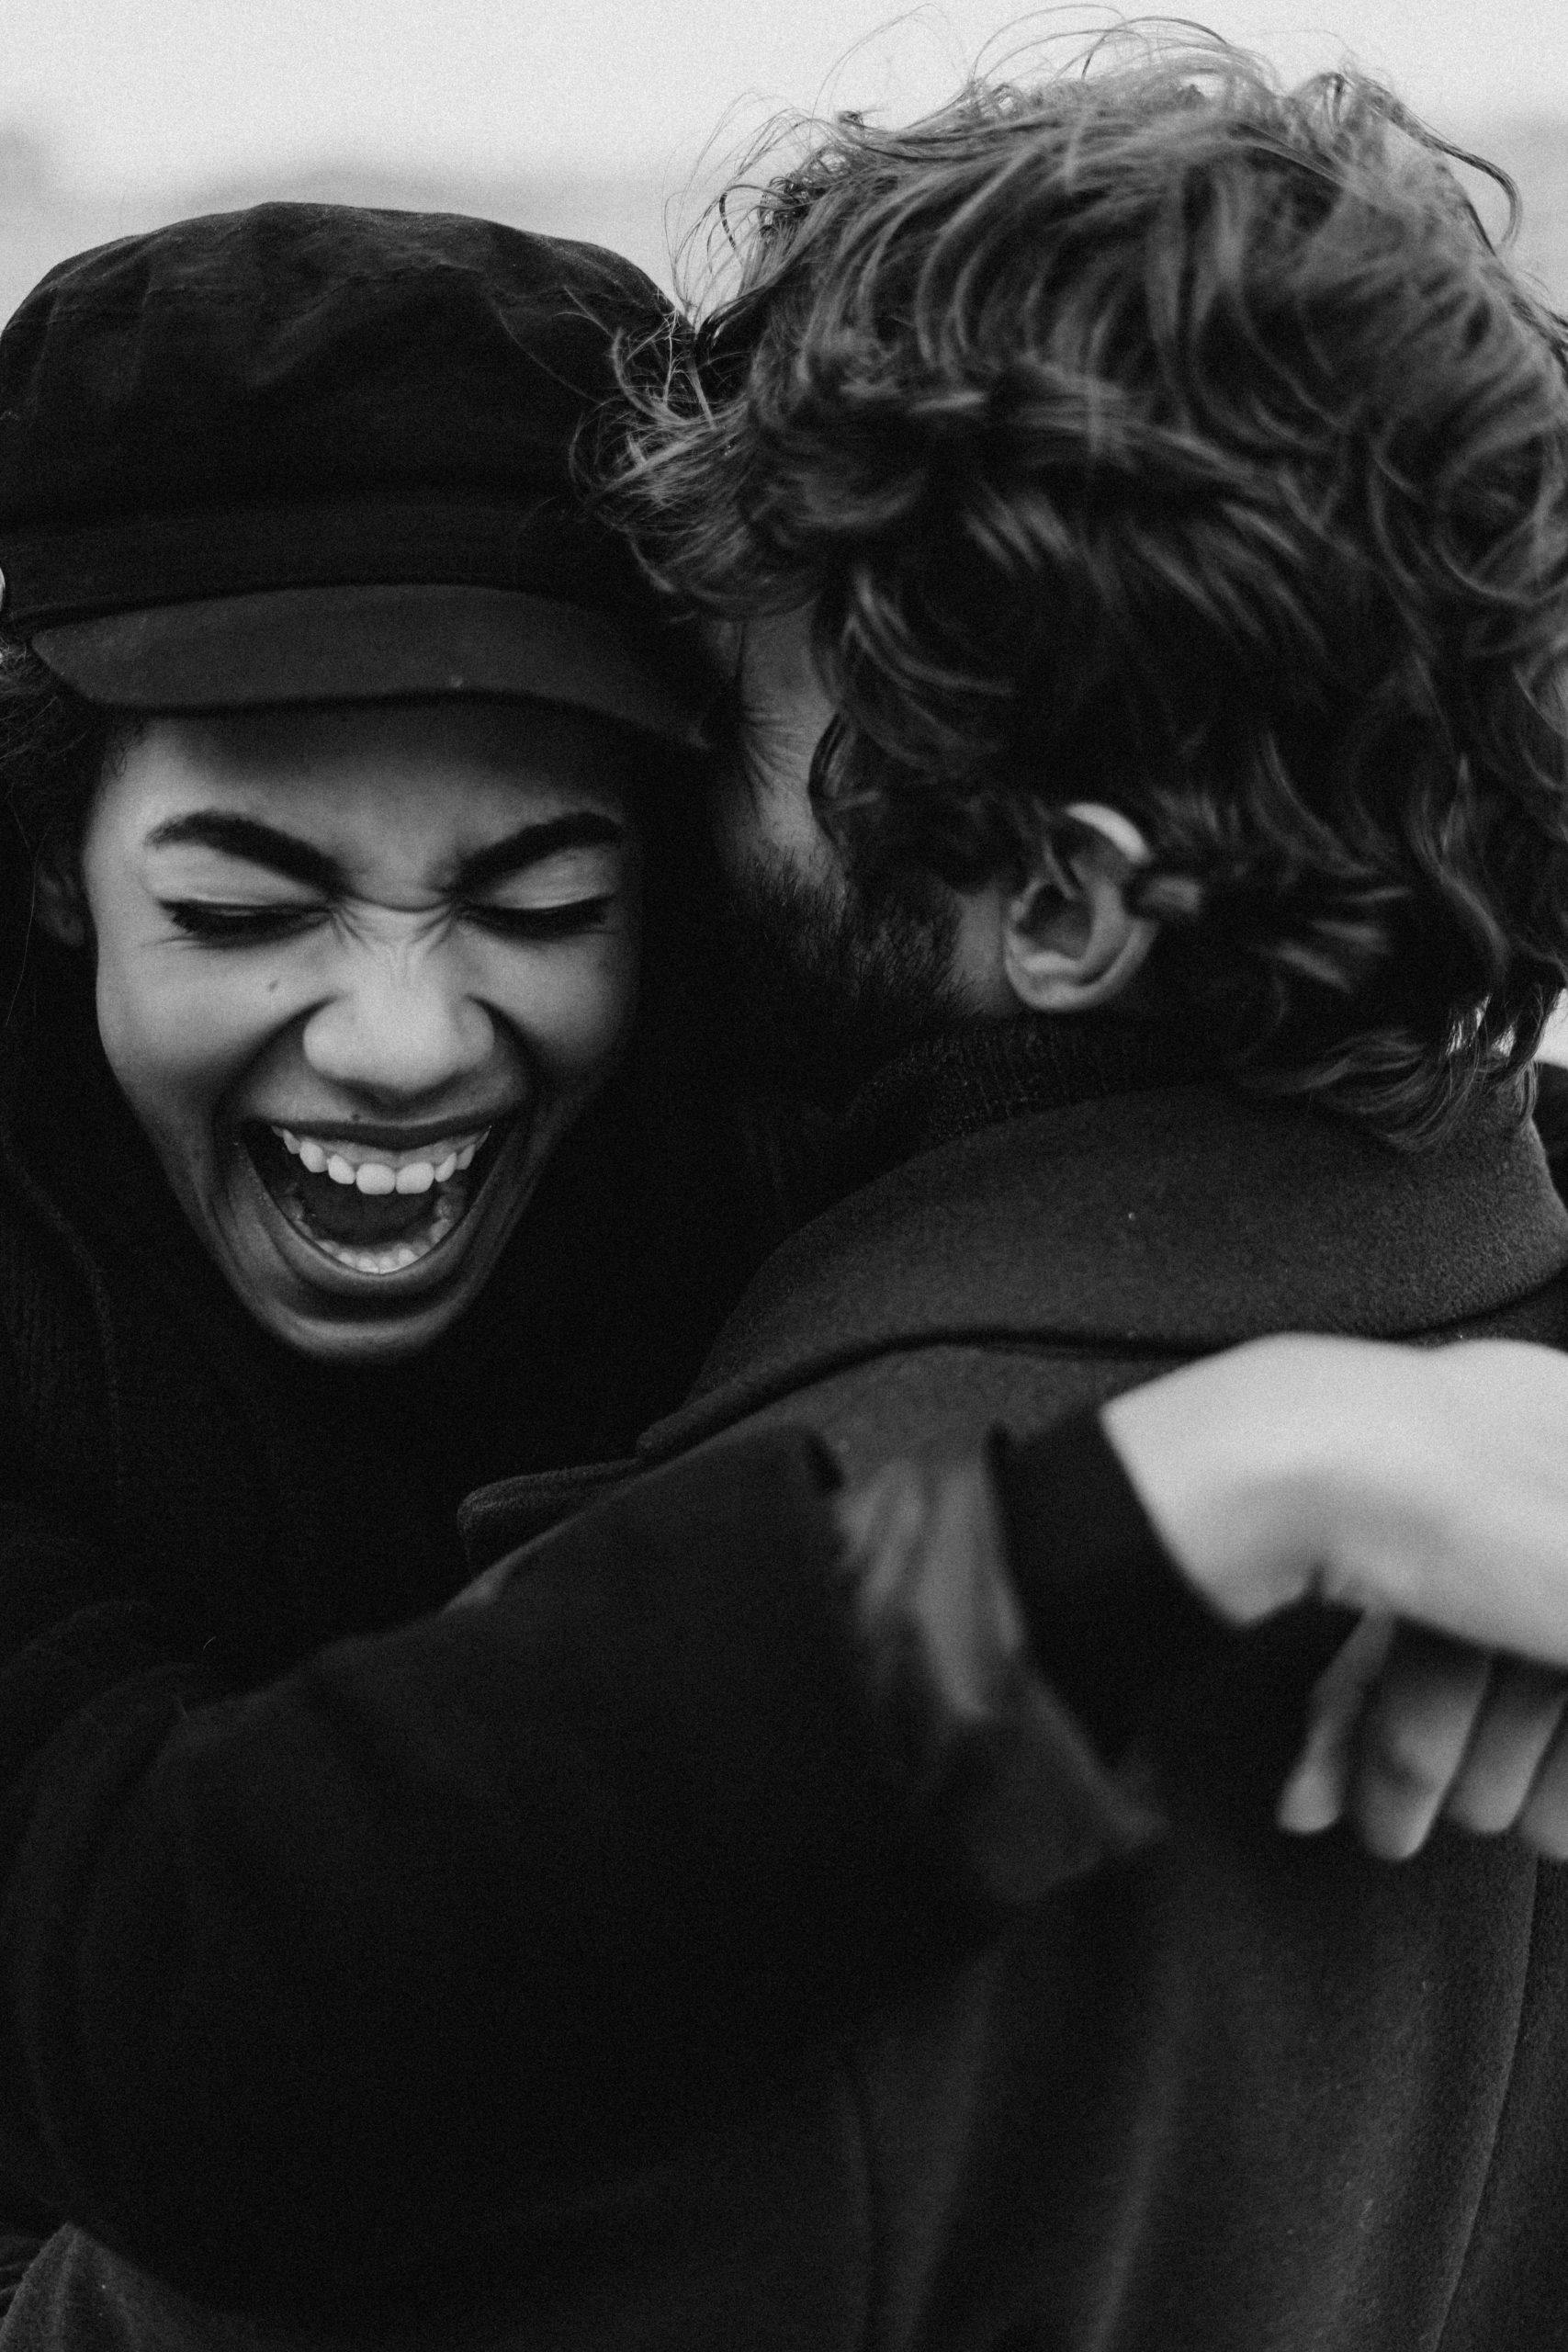 Smiling couple black and white photography